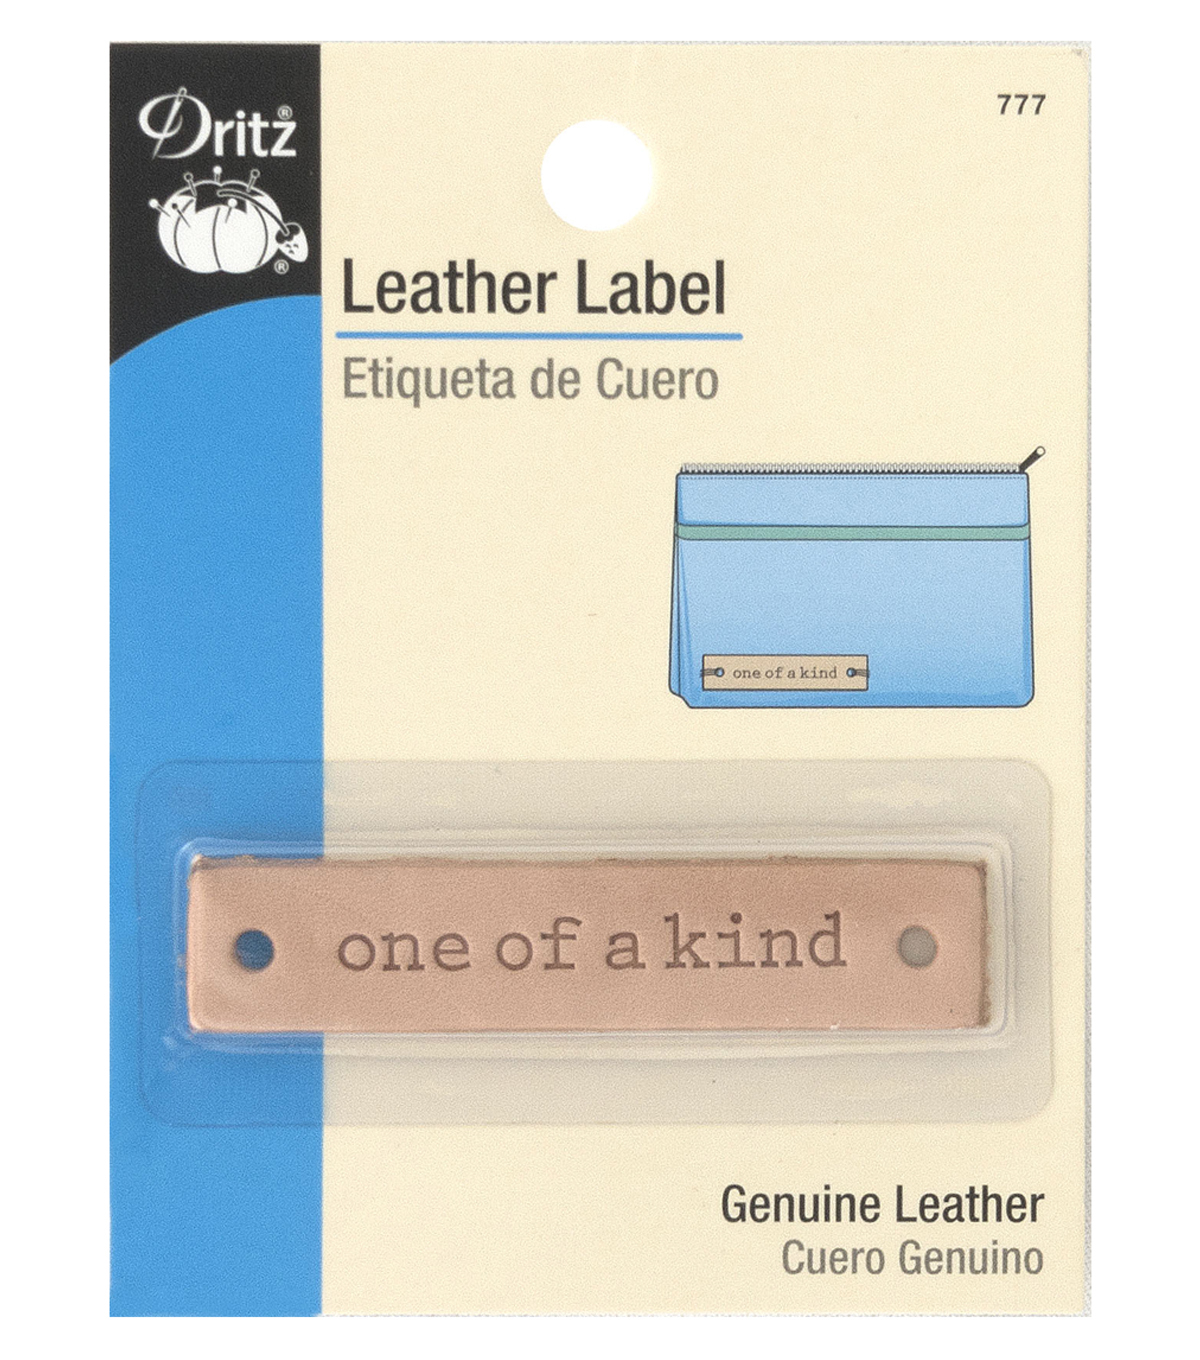 Dritz Leather Rectangle Label-one of a kind